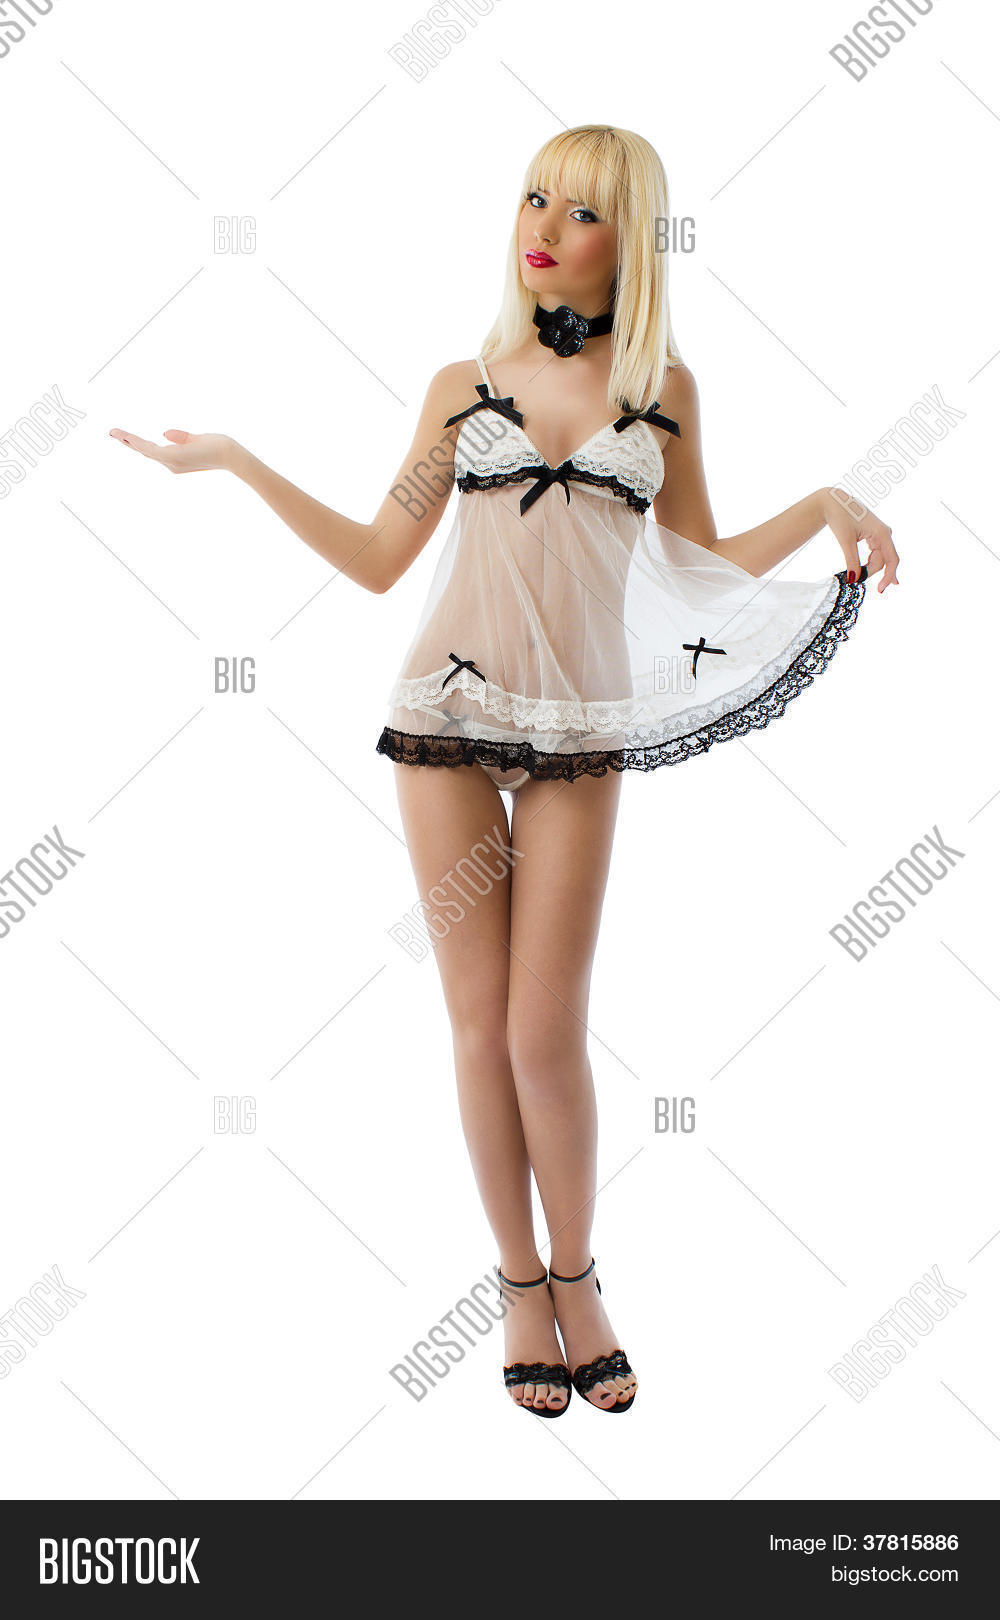 Full length of a sexy blonde model wearing white lingerie against white background